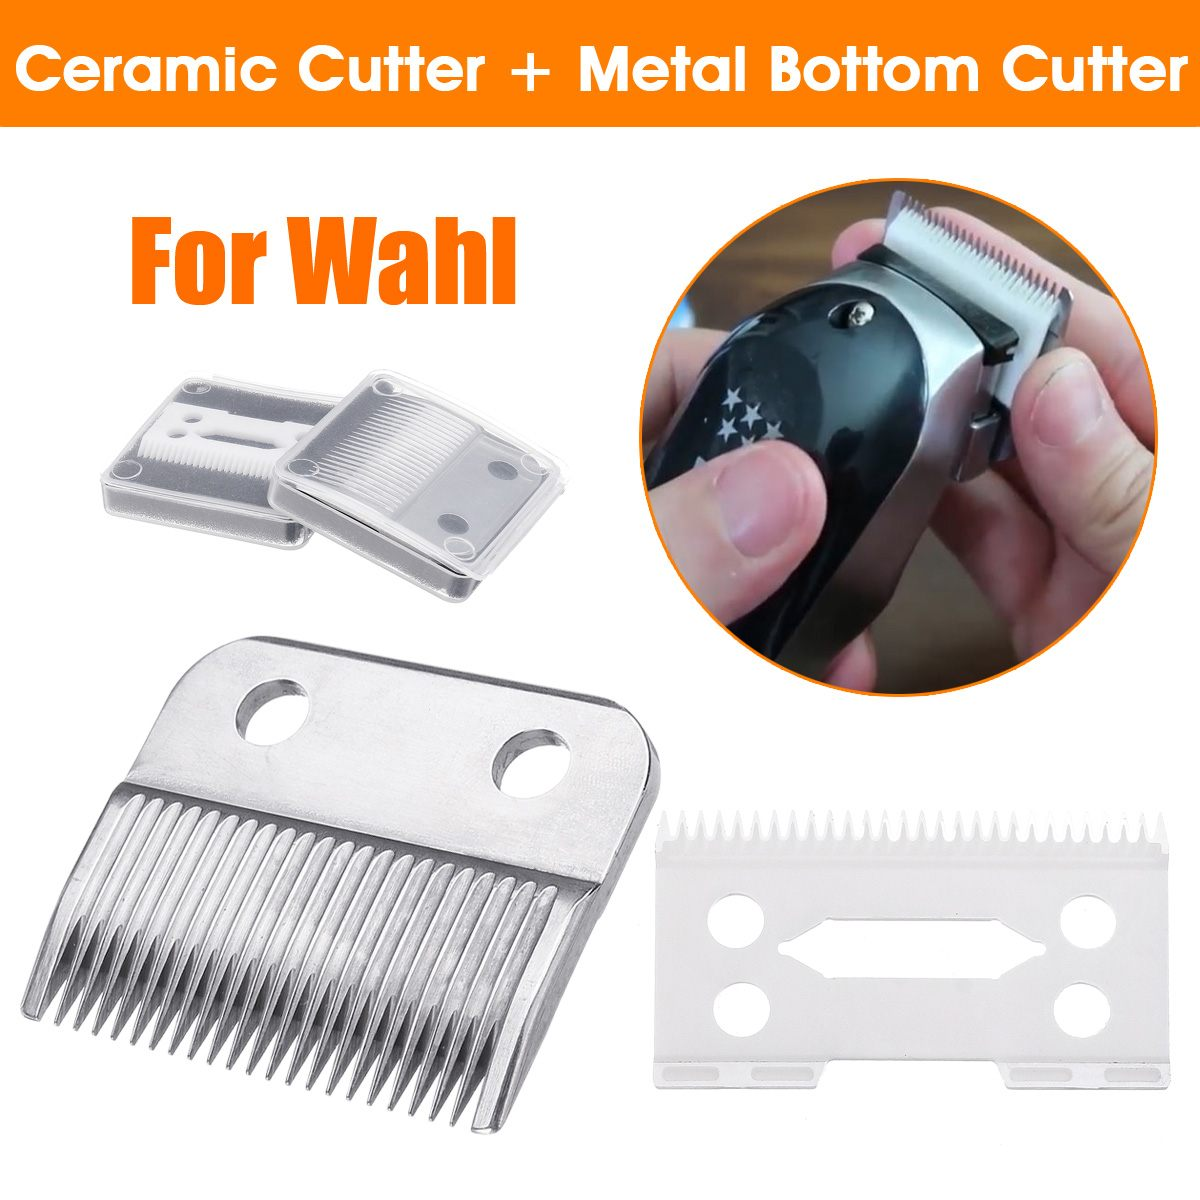 2Pcs Ceramic Cutter Metal Bottom Cutter Durable Hair Grooming Trimmer Professional Clipper Cutter Blade For Wahl Electric Shear